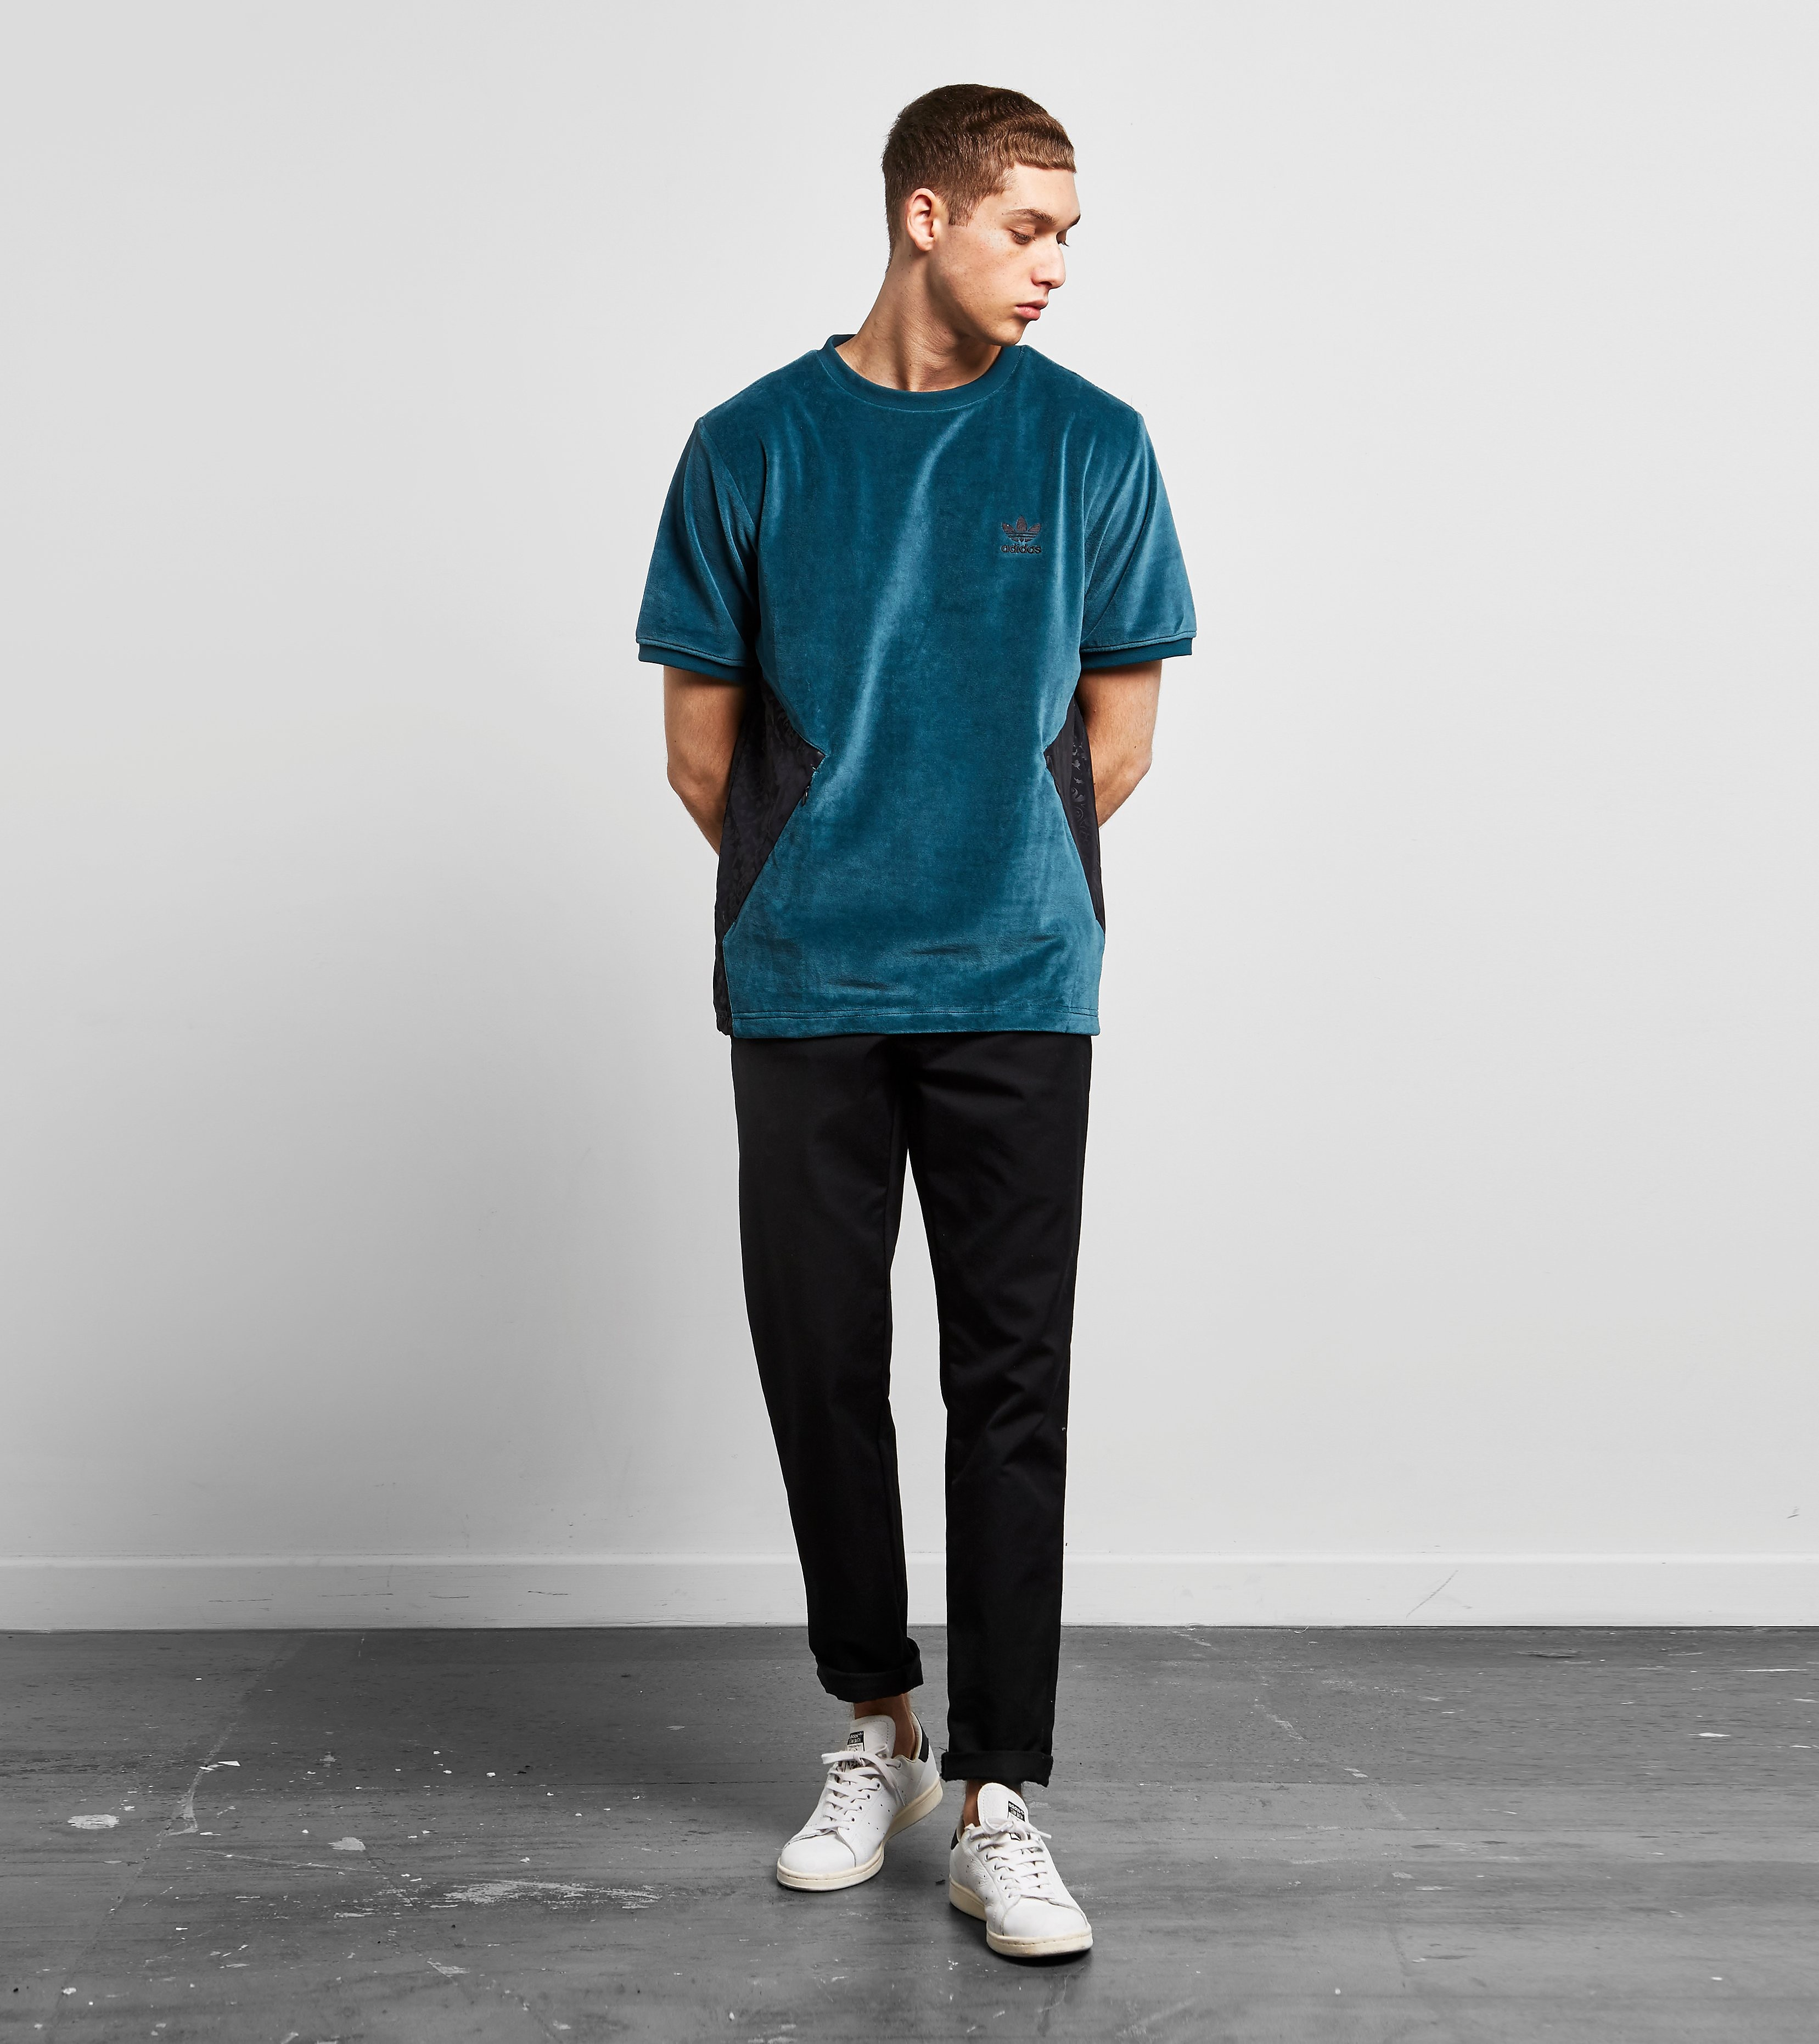 adidas Originals Velour Crew T-Shirt